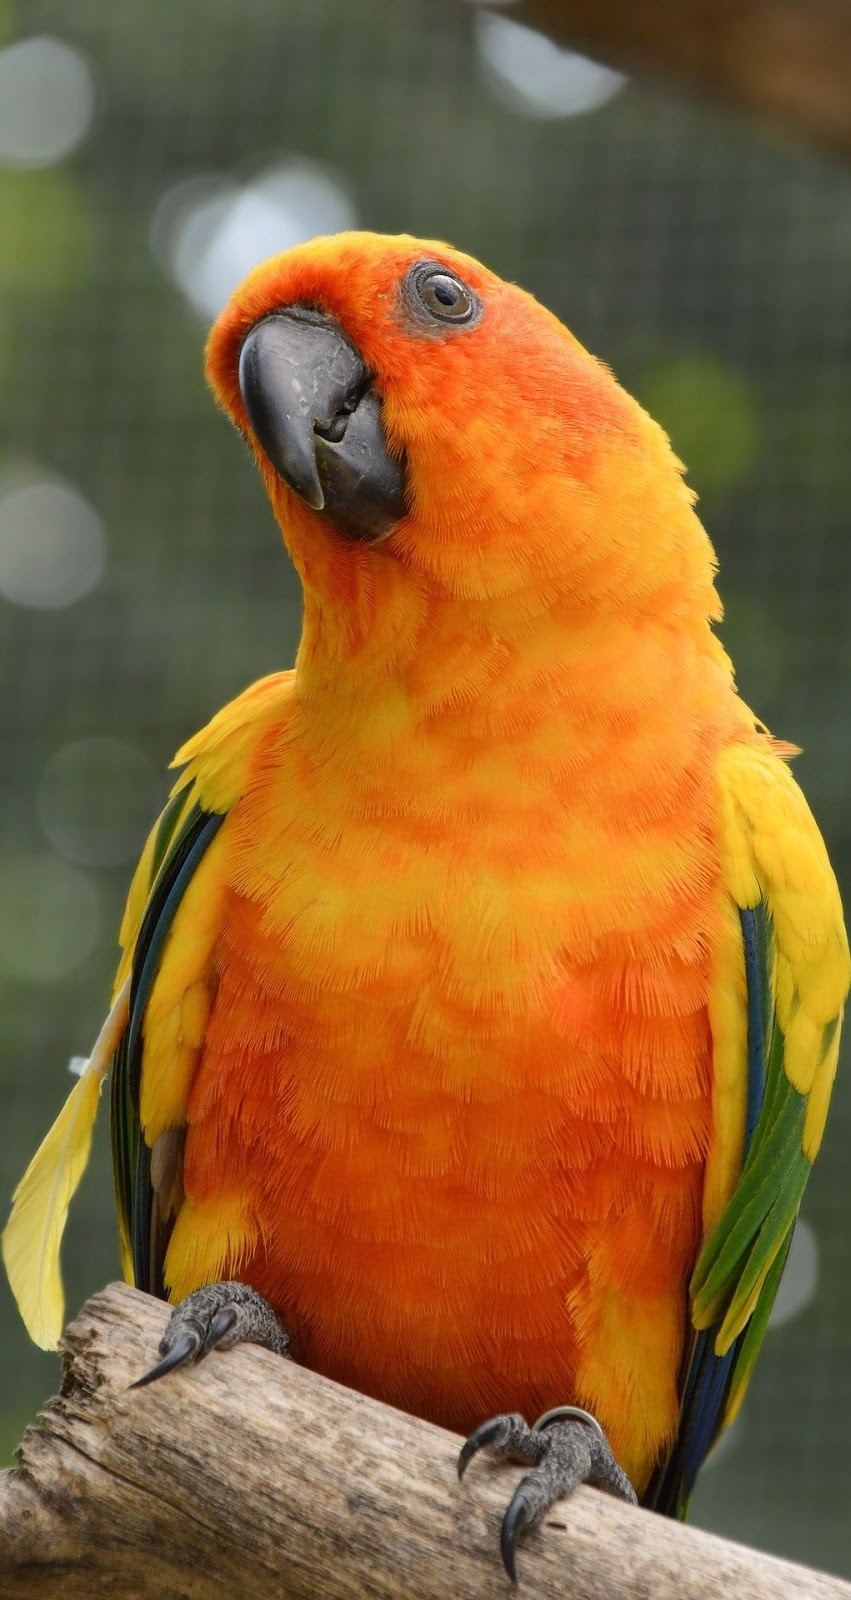 Photo of a conure.